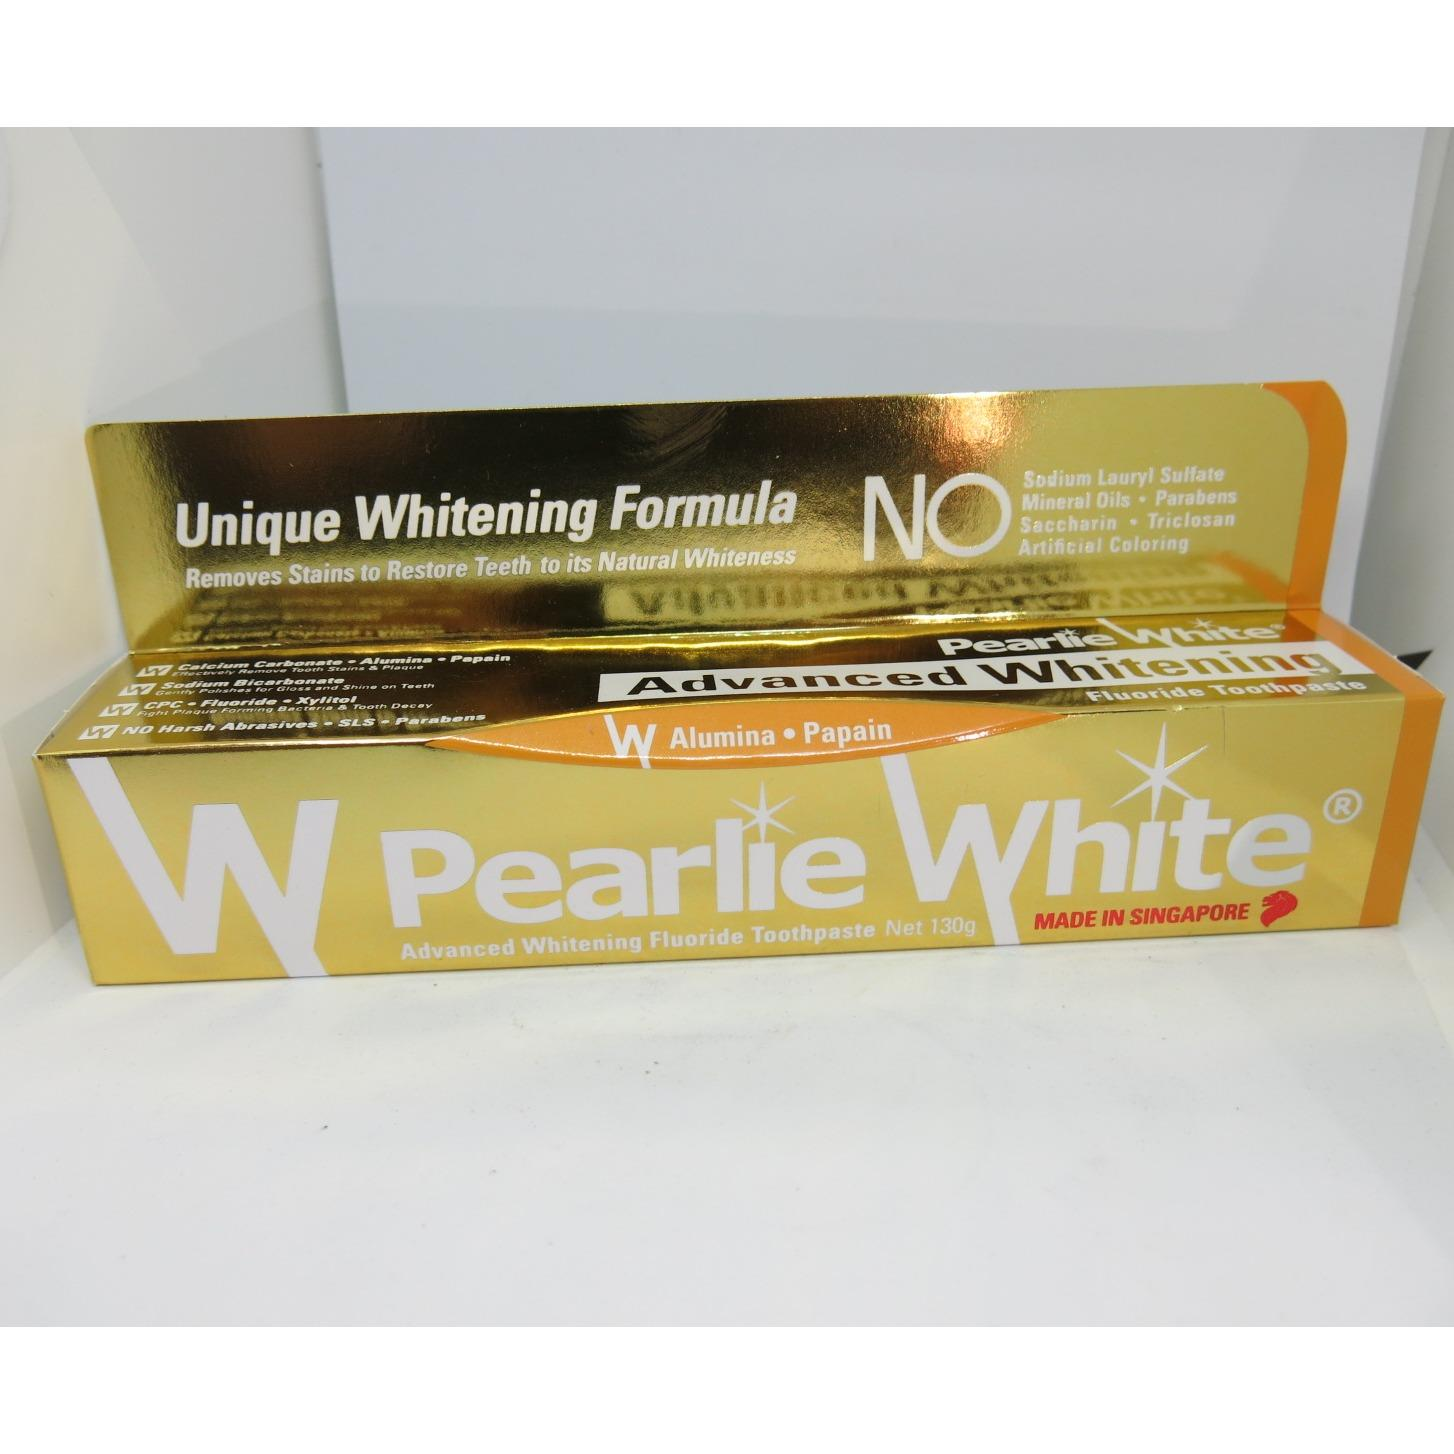 Pearlie White Advanced Whitening Fluoride Toothpaste 130 Grams X 3 Tubes Shop